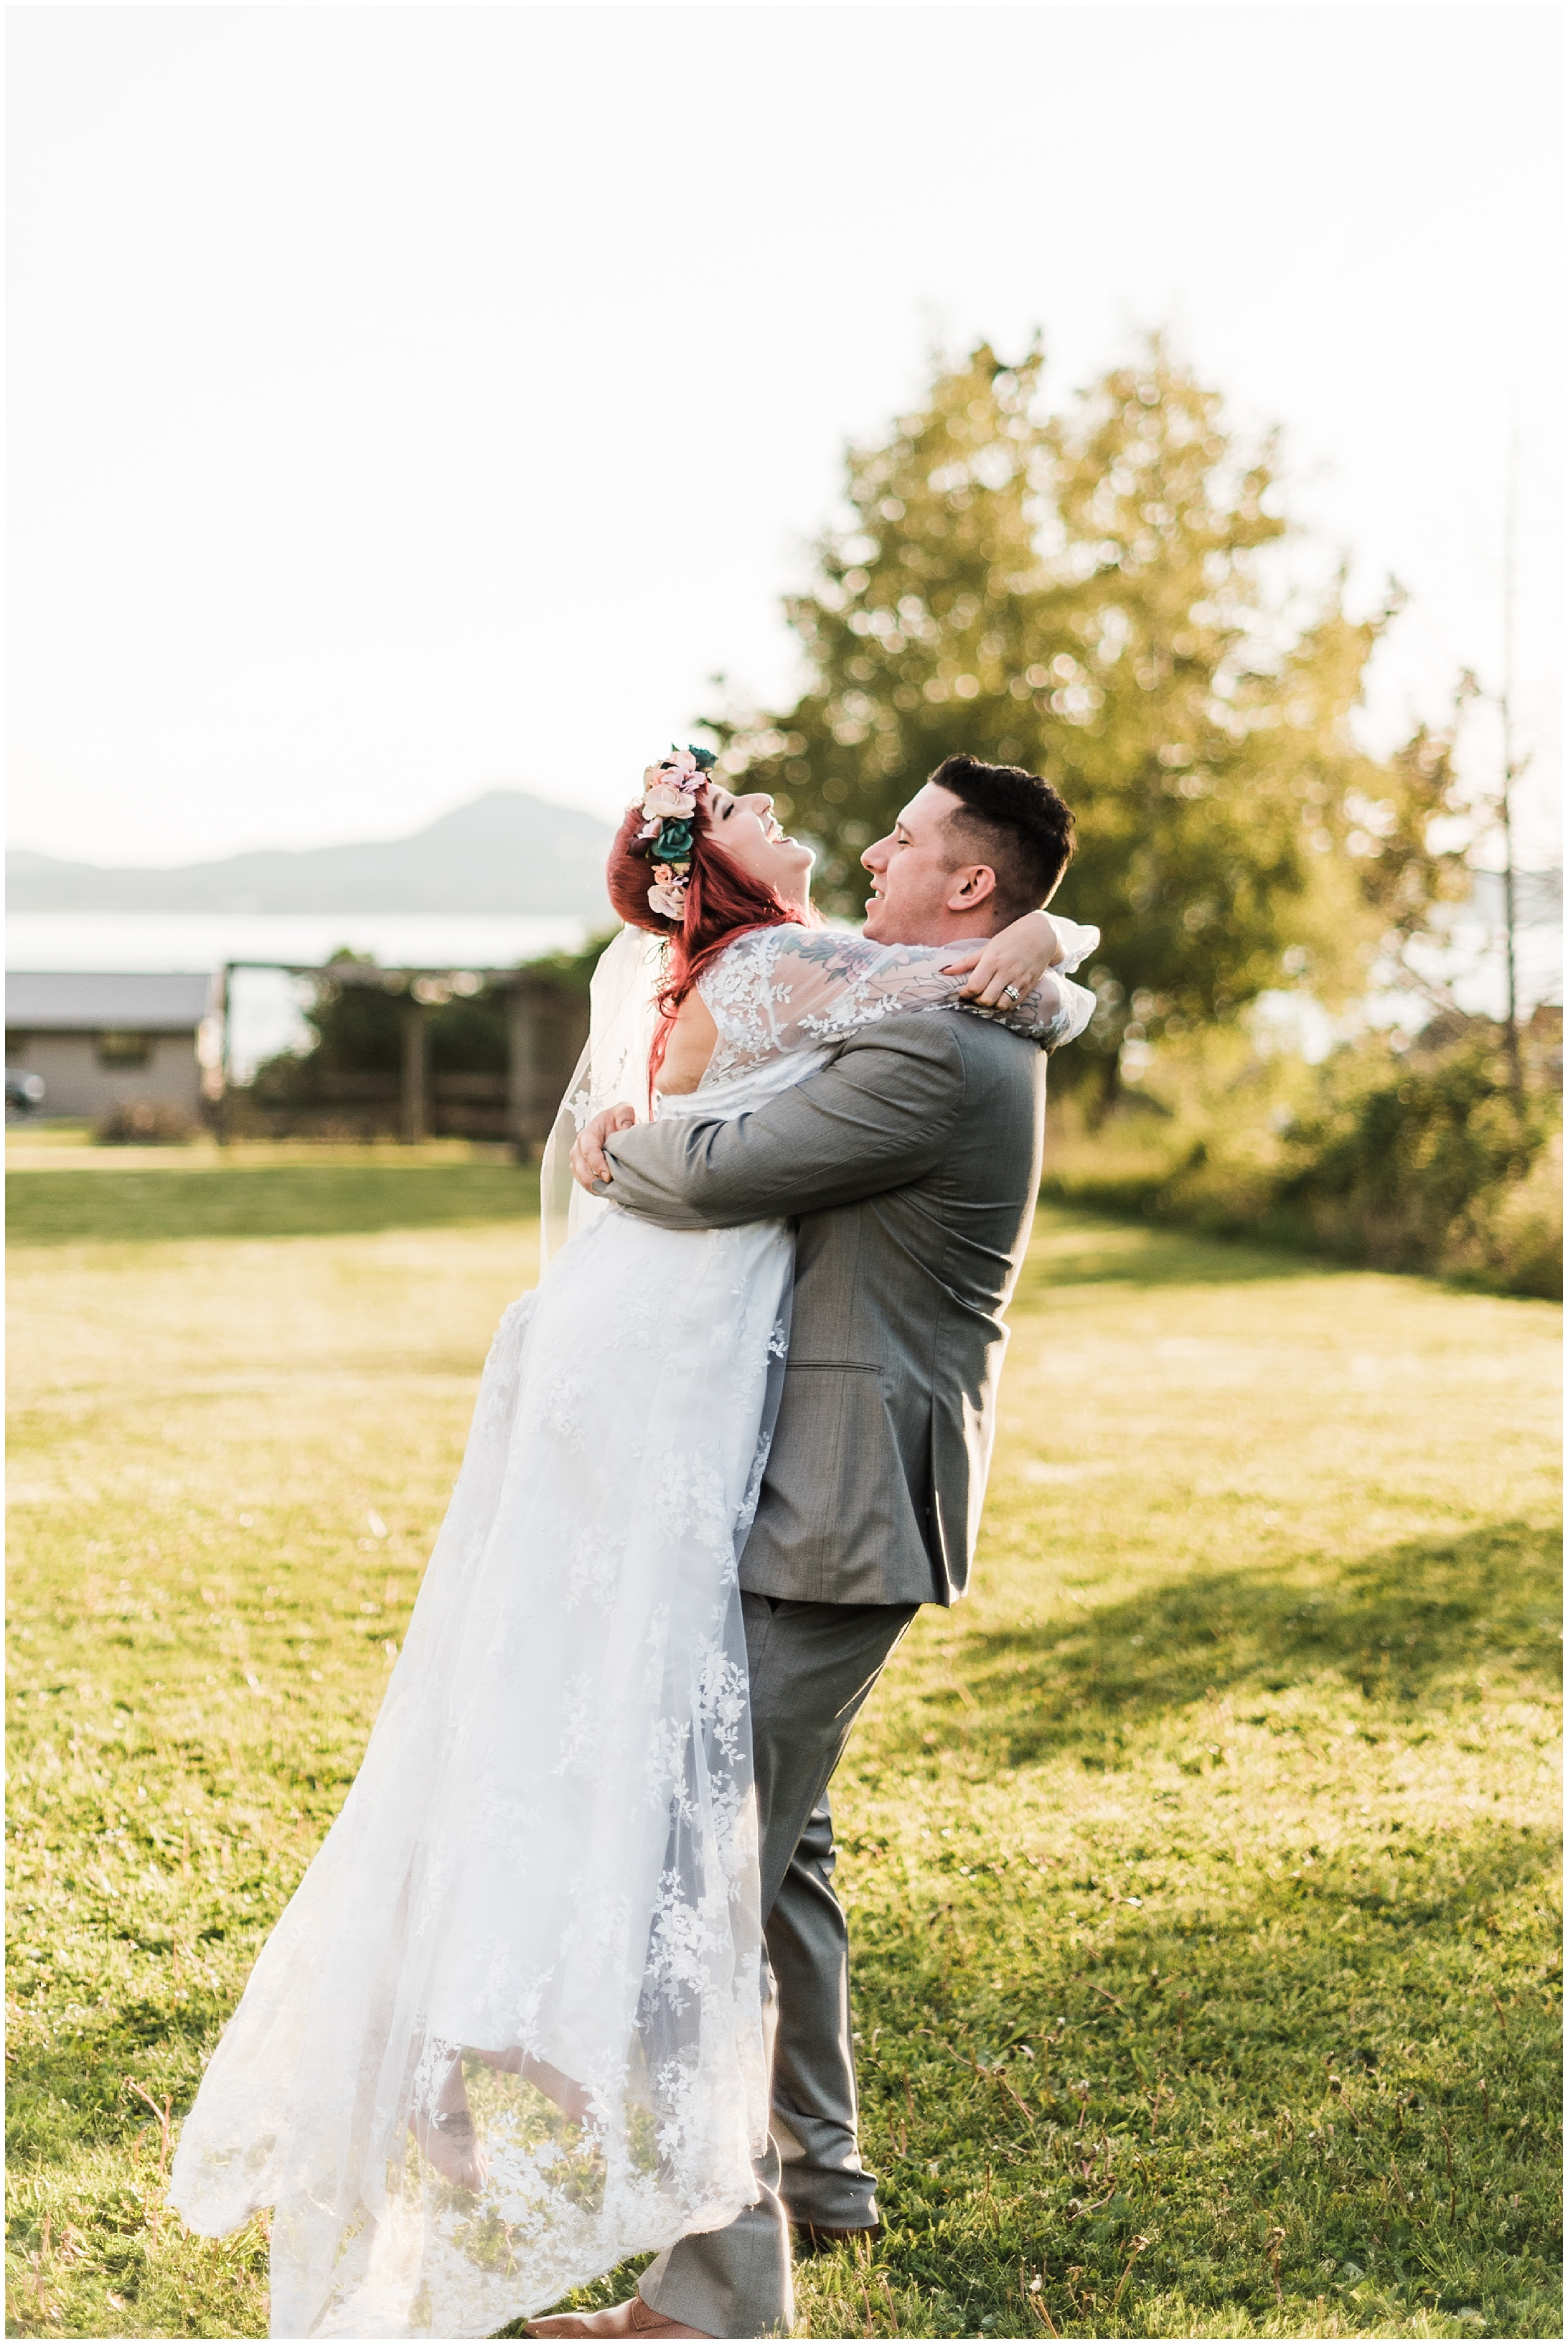 Photo of bride and groom dancing on the lawn of Bayview Civic Hall during their wedding reception in Bayview, WA